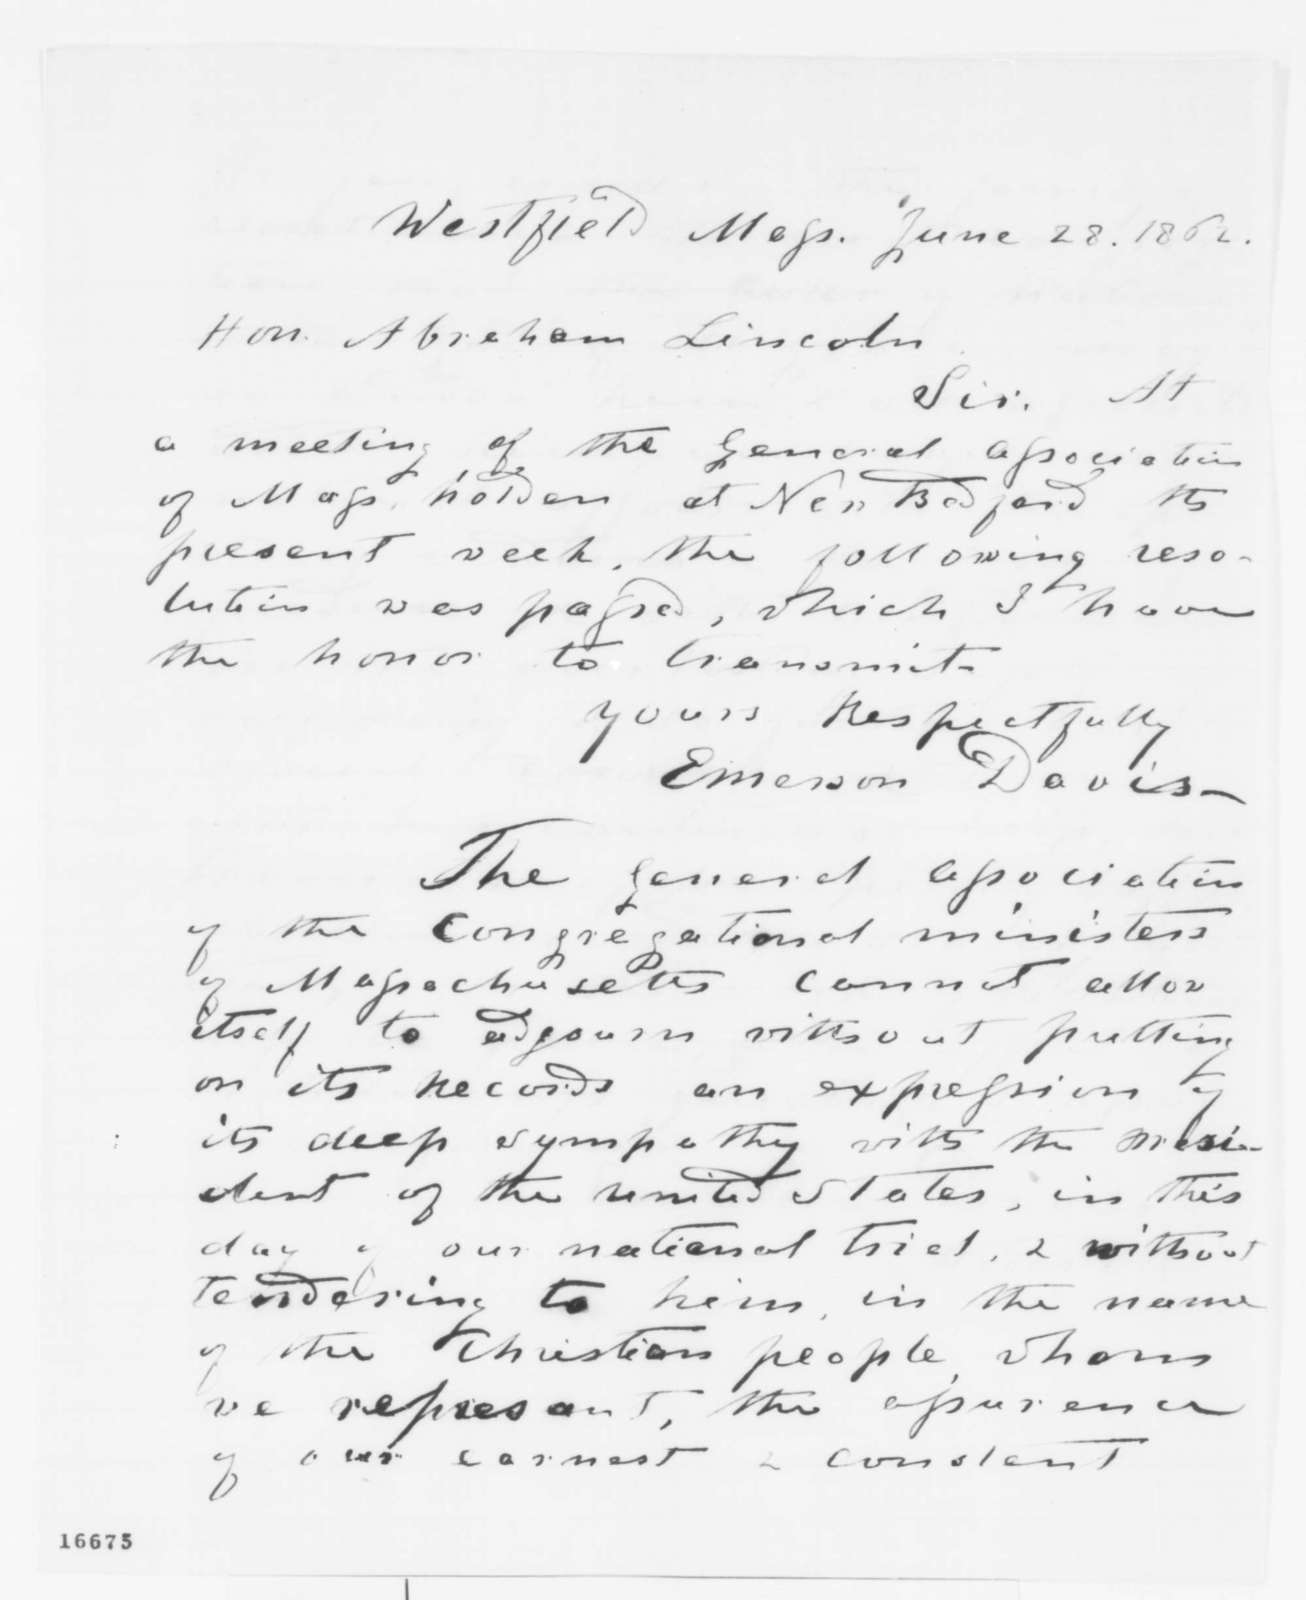 Emerson Davis to Abraham Lincoln, Saturday, June 28, 1862  (Sends resolutions of support from General Association of Congregational Ministers in Massachusetts)